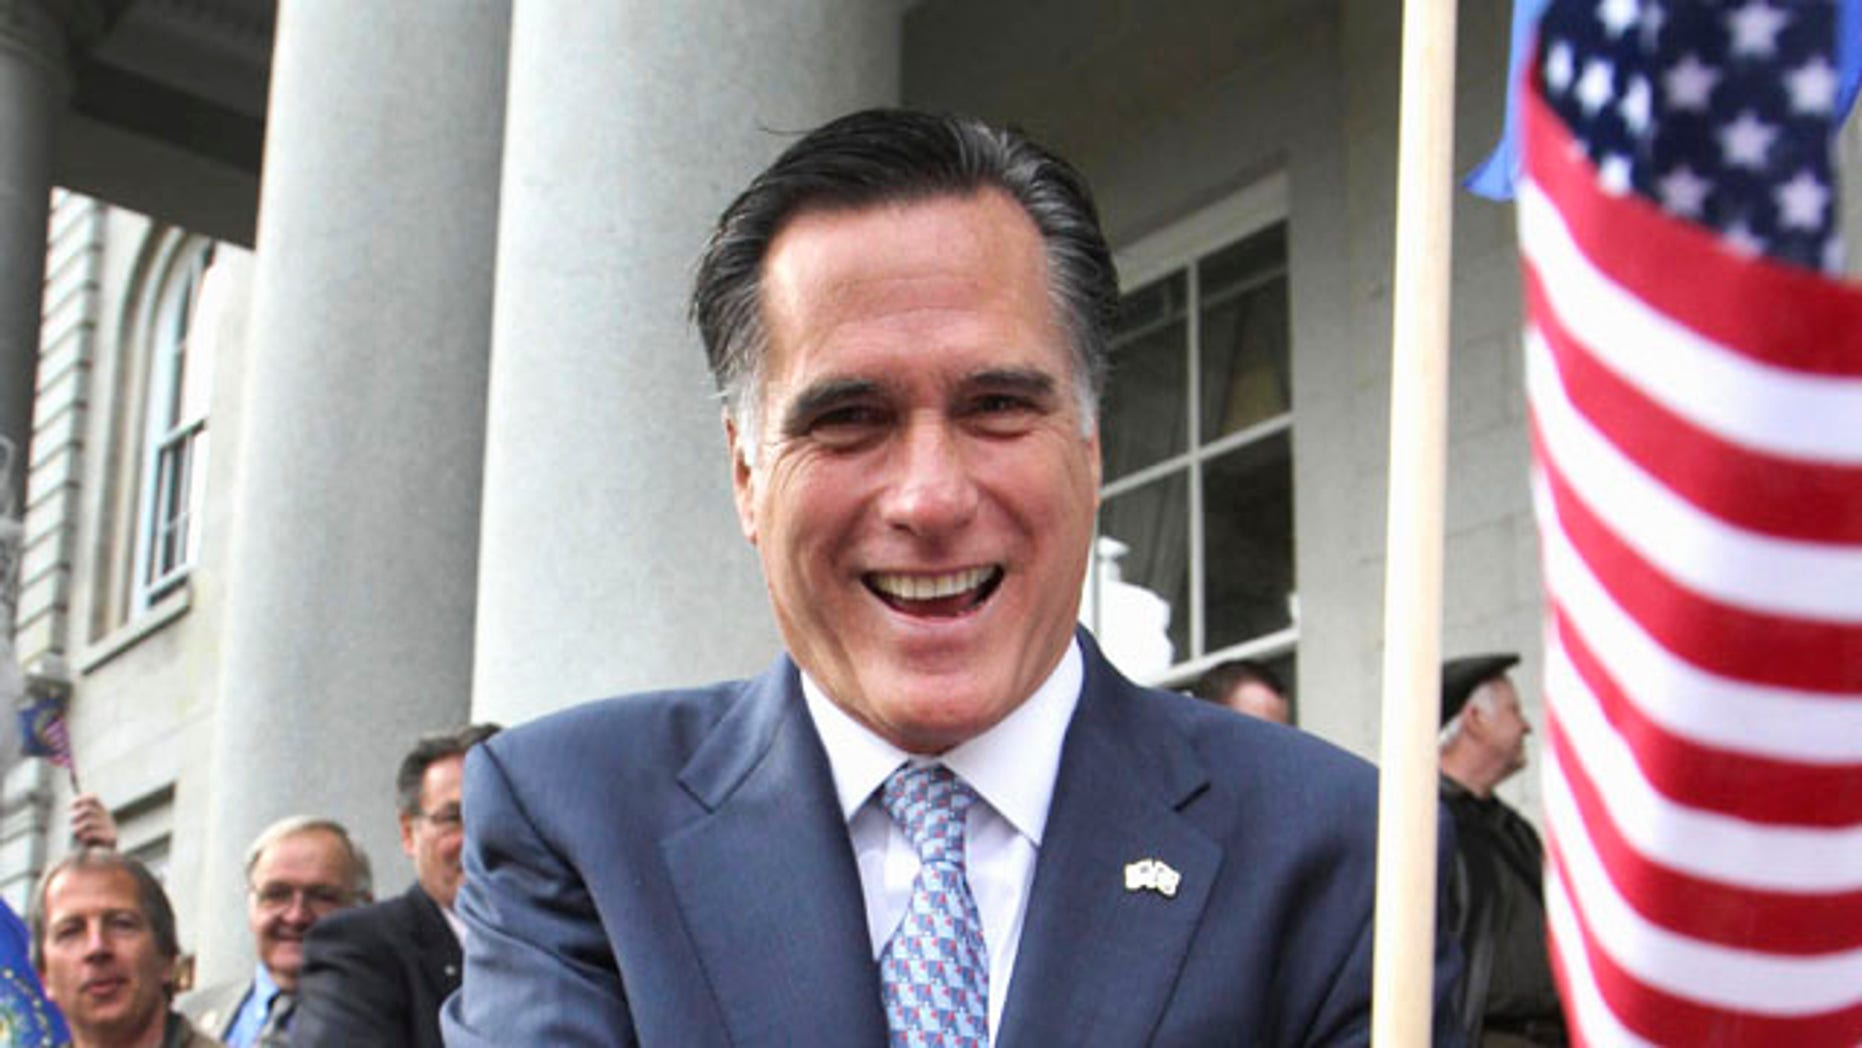 FILE - In this Oct. 24, 2011 file photo, Republican presidential candidate, former Massachusetts Gov. Mitt Romney greets supporters outside the State House  in Concord, N.H. (AP Photo/Jim Cole, File)